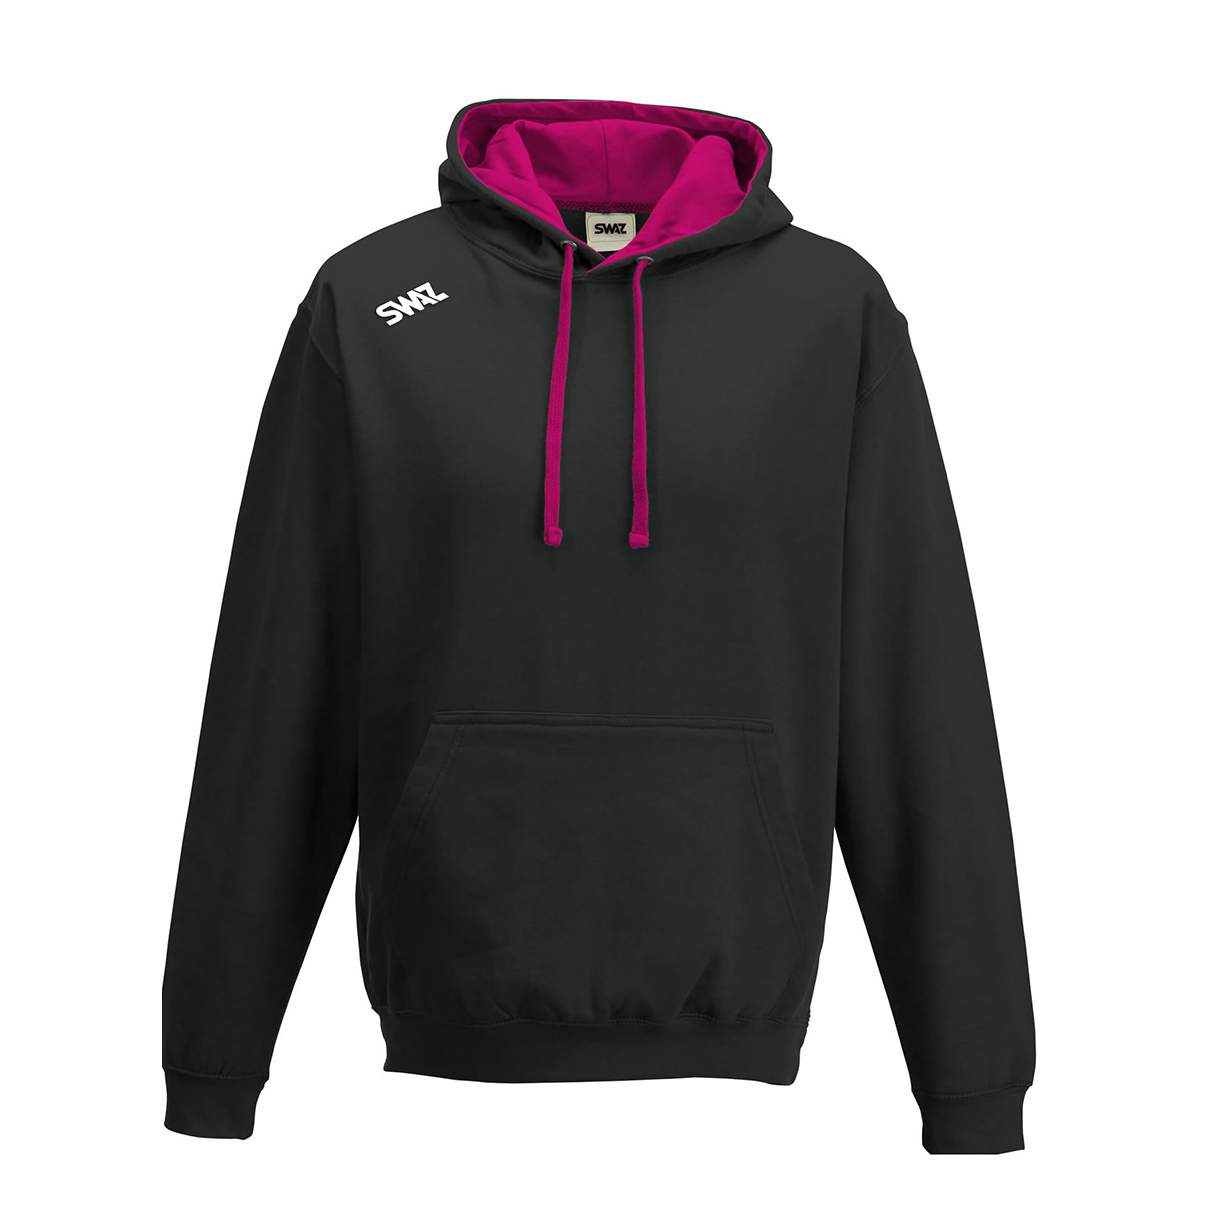 SWAZ Club Hoody – Black/Hot Pink